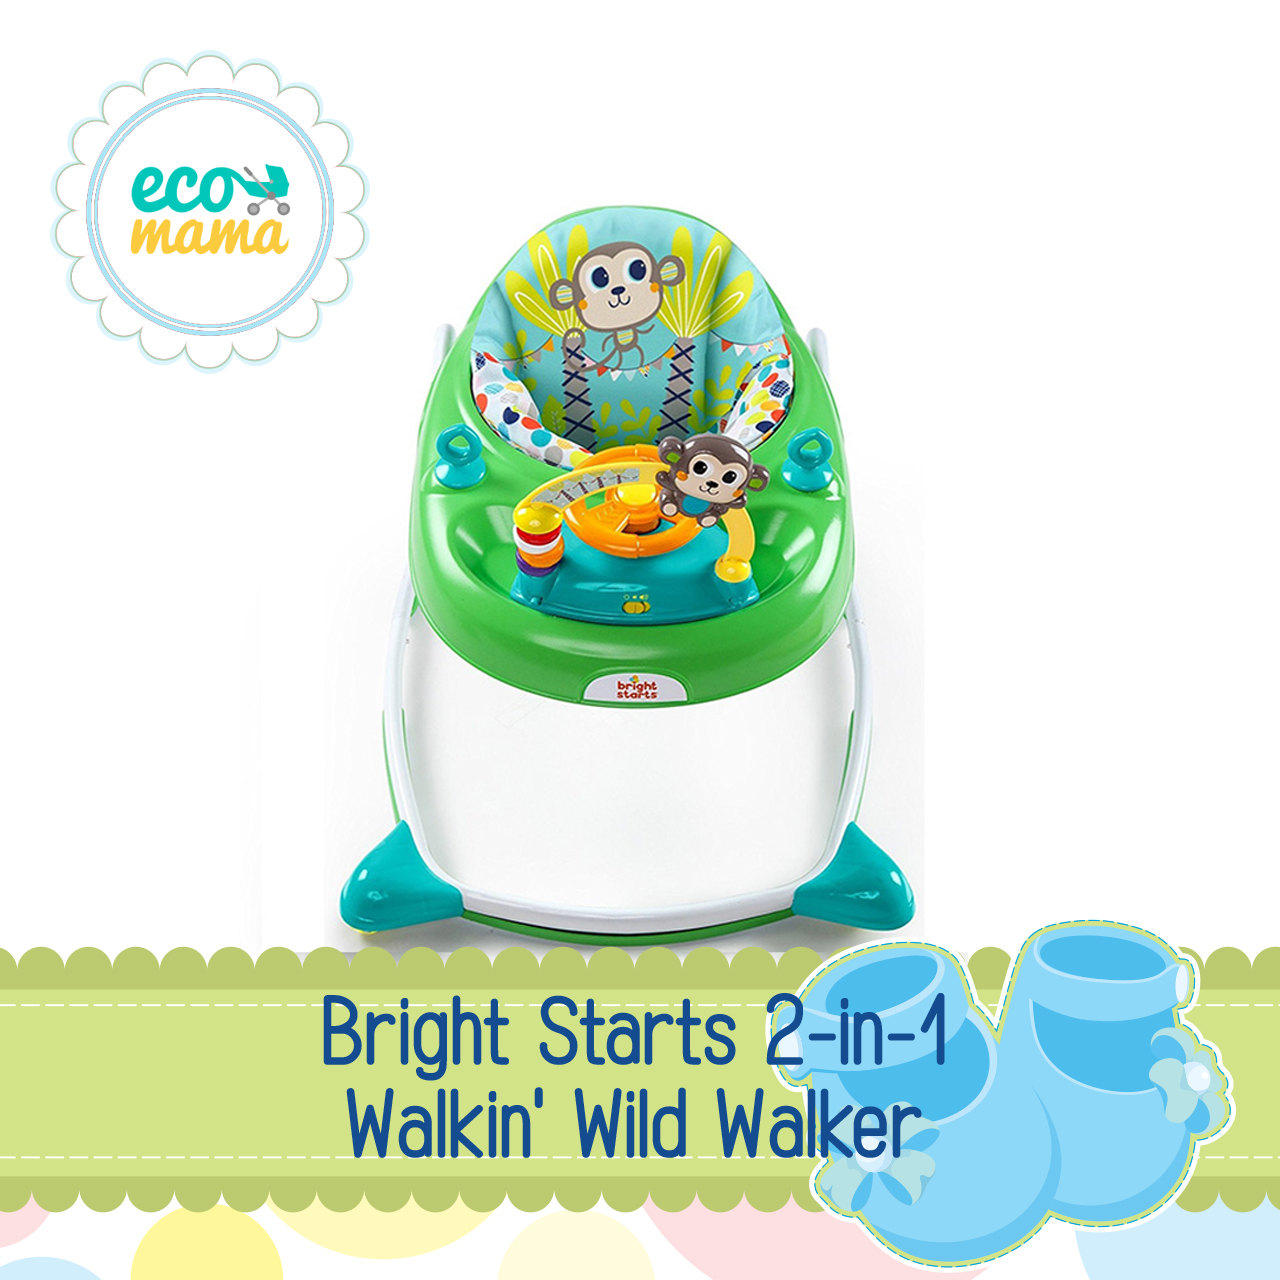 Bright Starts 2 in 1 Walkin' Wild Walker